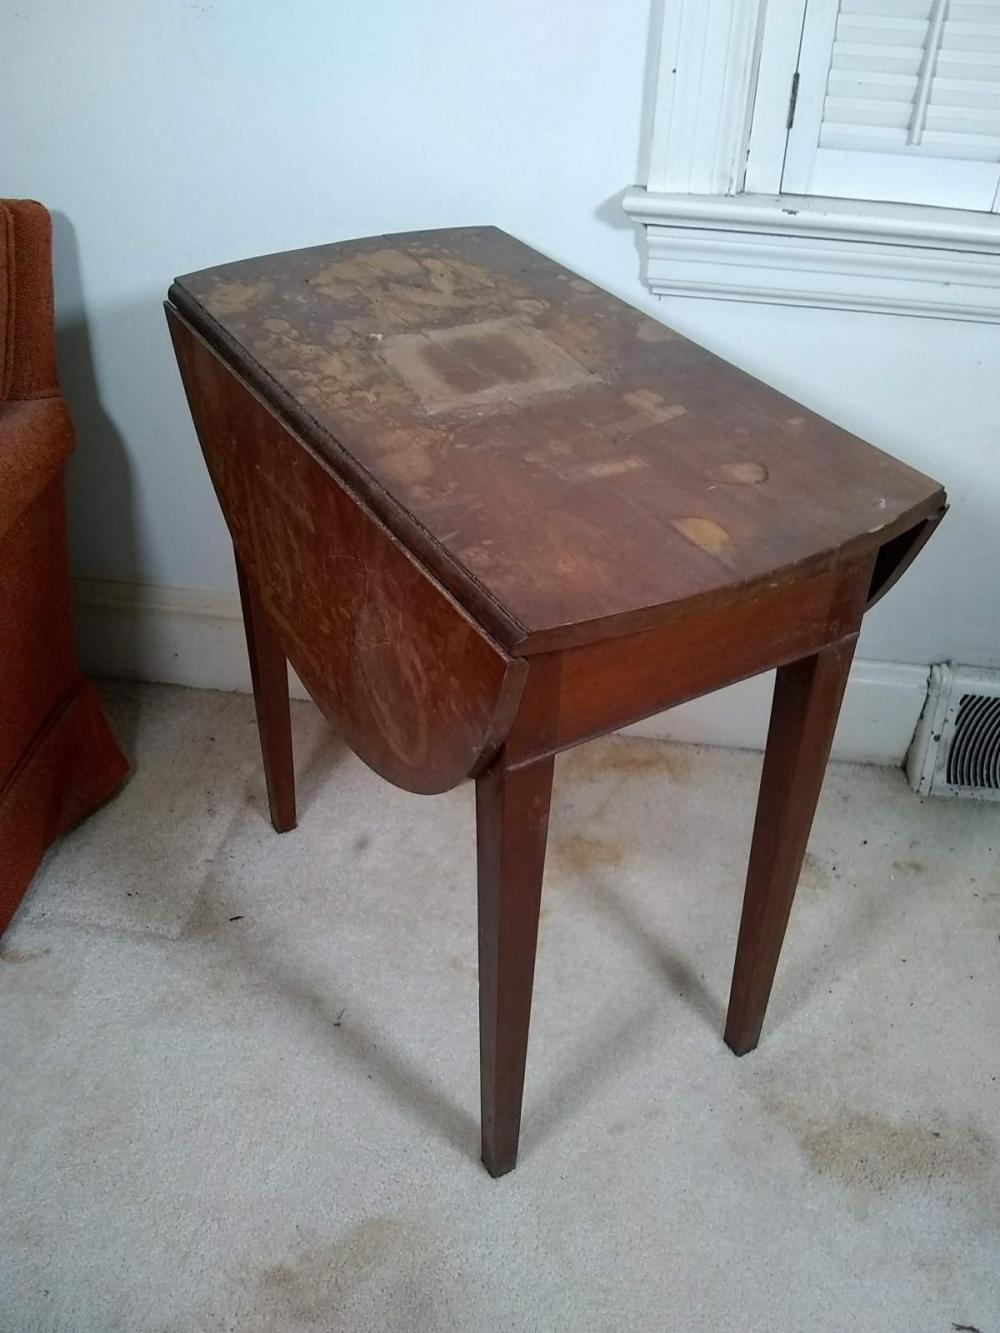 Early Mahogany Oval Drop Leaf Table - Water stains on top